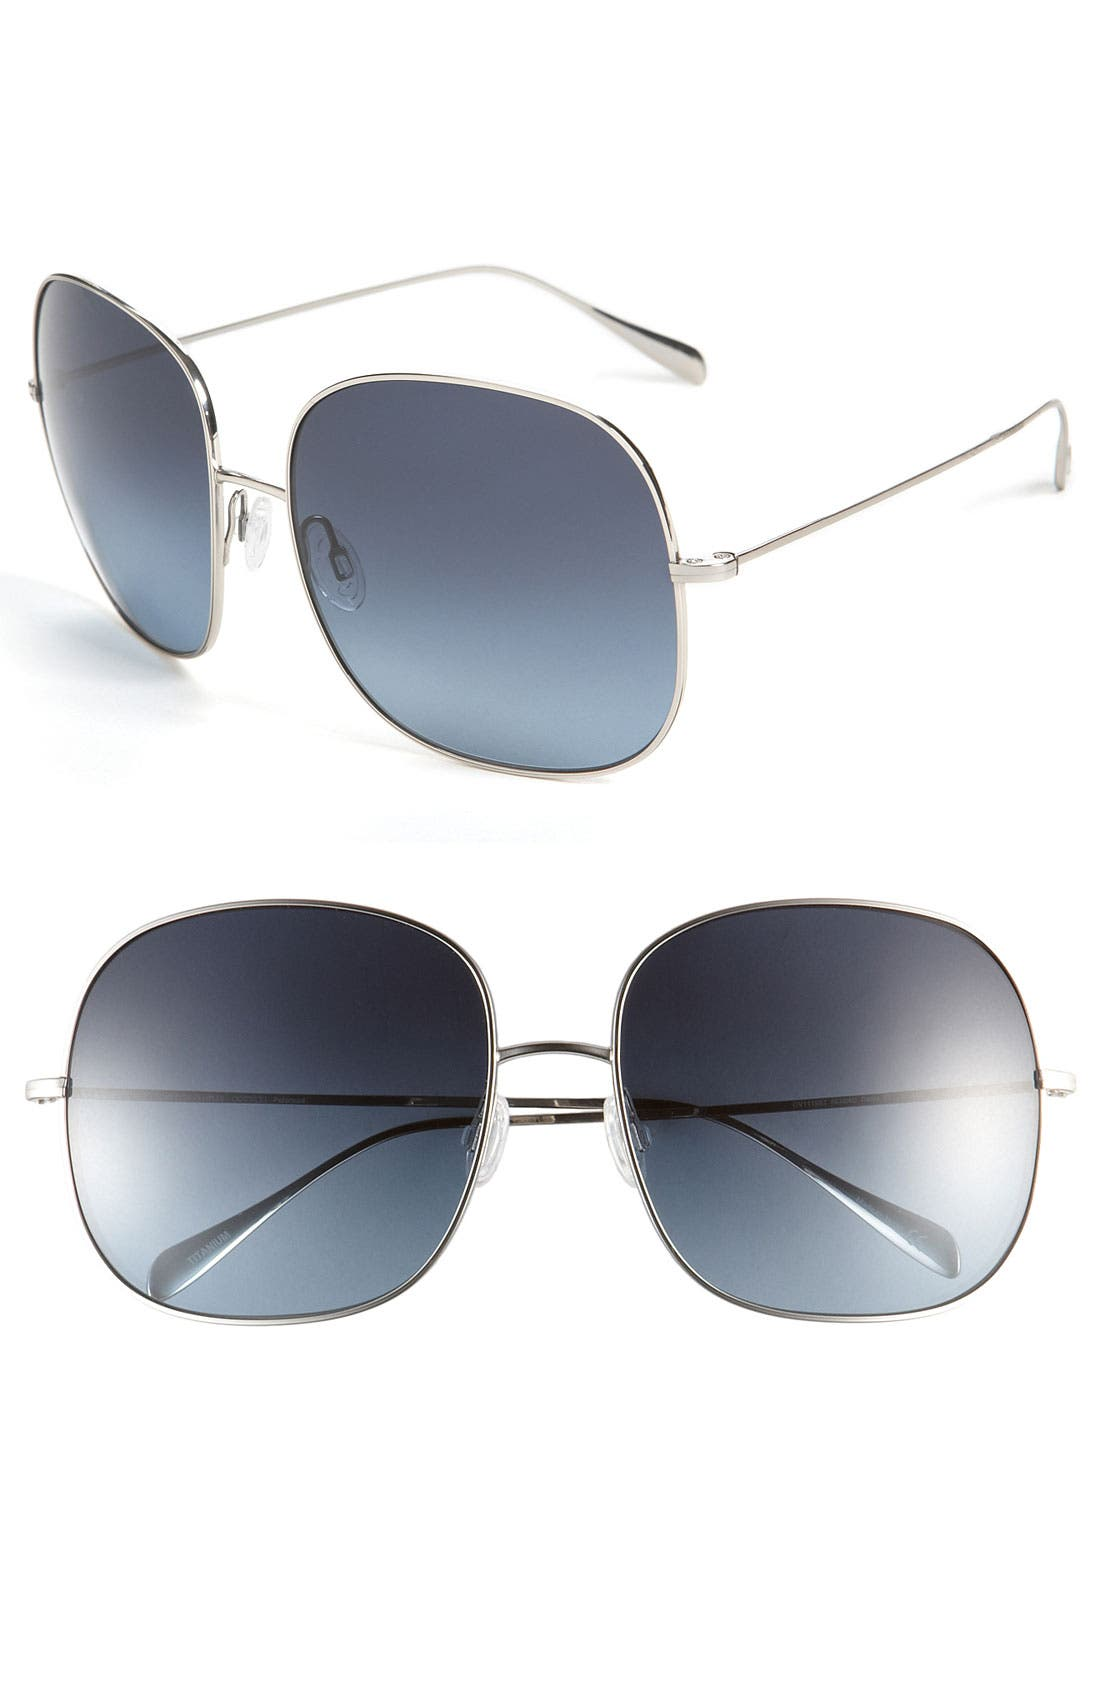 Alternate Image 1 Selected - Oliver Peoples Polarized Sunglasses